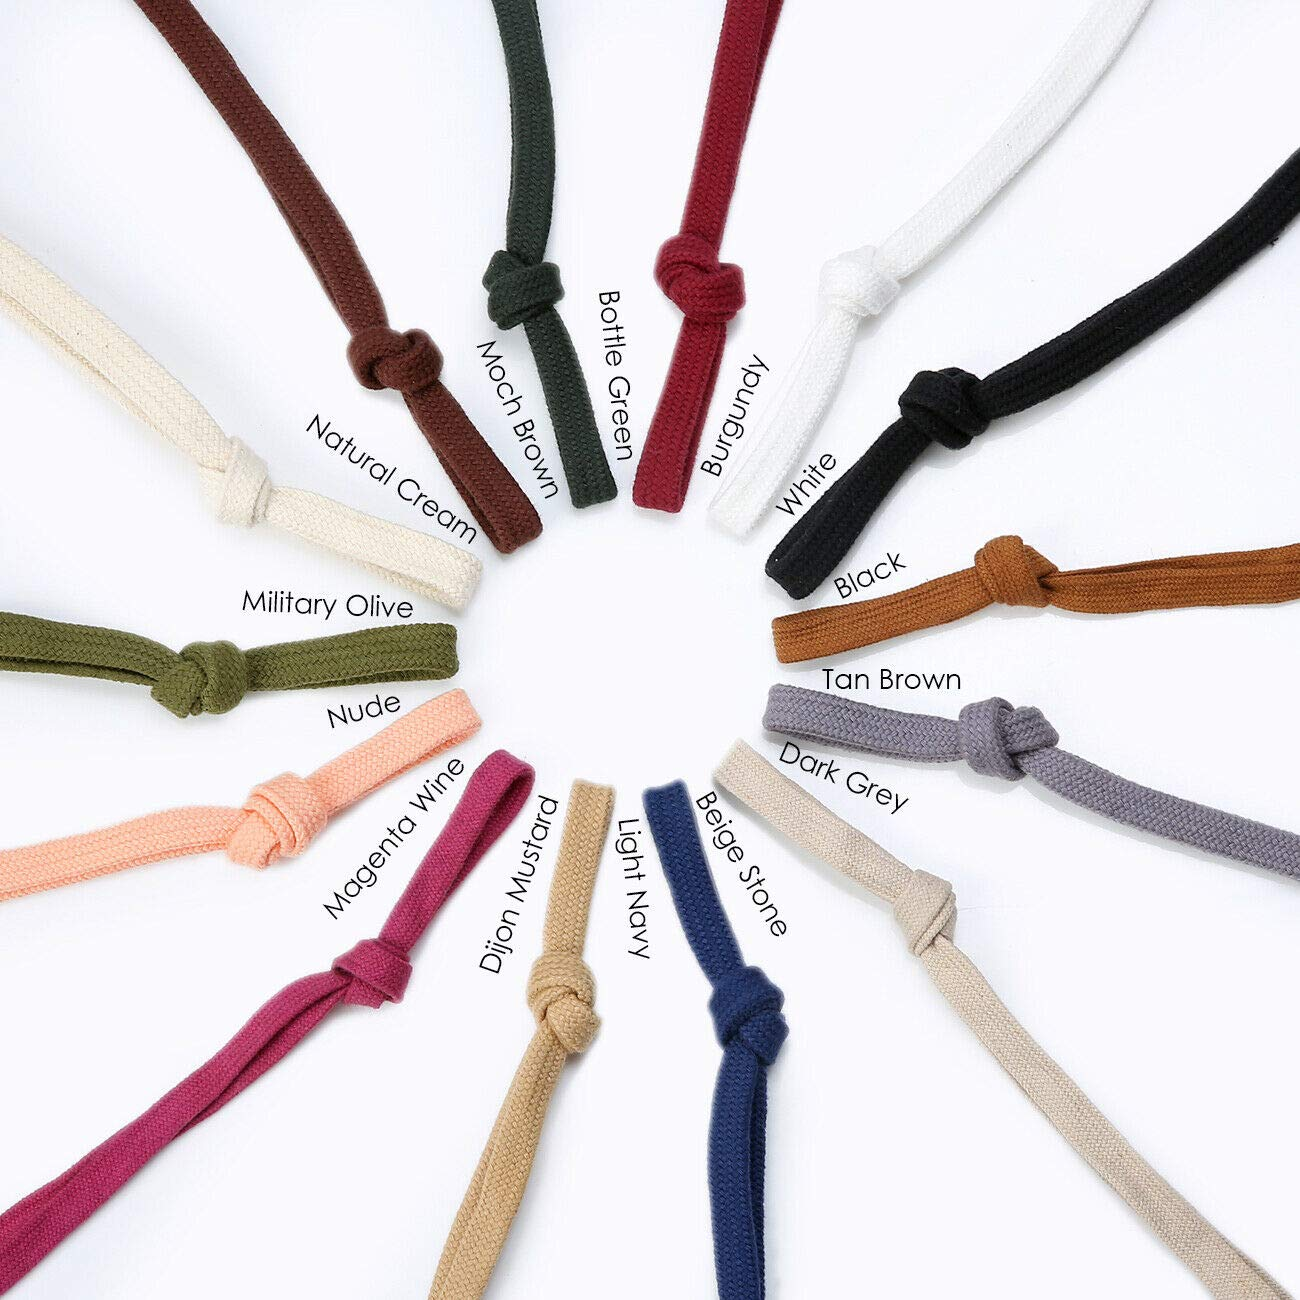 Sweatshirt Hoodie Flat Cotton Tape Ribbon Cord Rope,10 & 15mm,Garment Hoody Drawstring. 26 Colours, 1mt, 5mts, 25mts and 45mts Rolls. Colours Match Neotrims Flanged 12mm Piping and 6mm Round Cord by Neotrims Fastening Tapes, Hook & Eye, Poppers & More (Image #5)